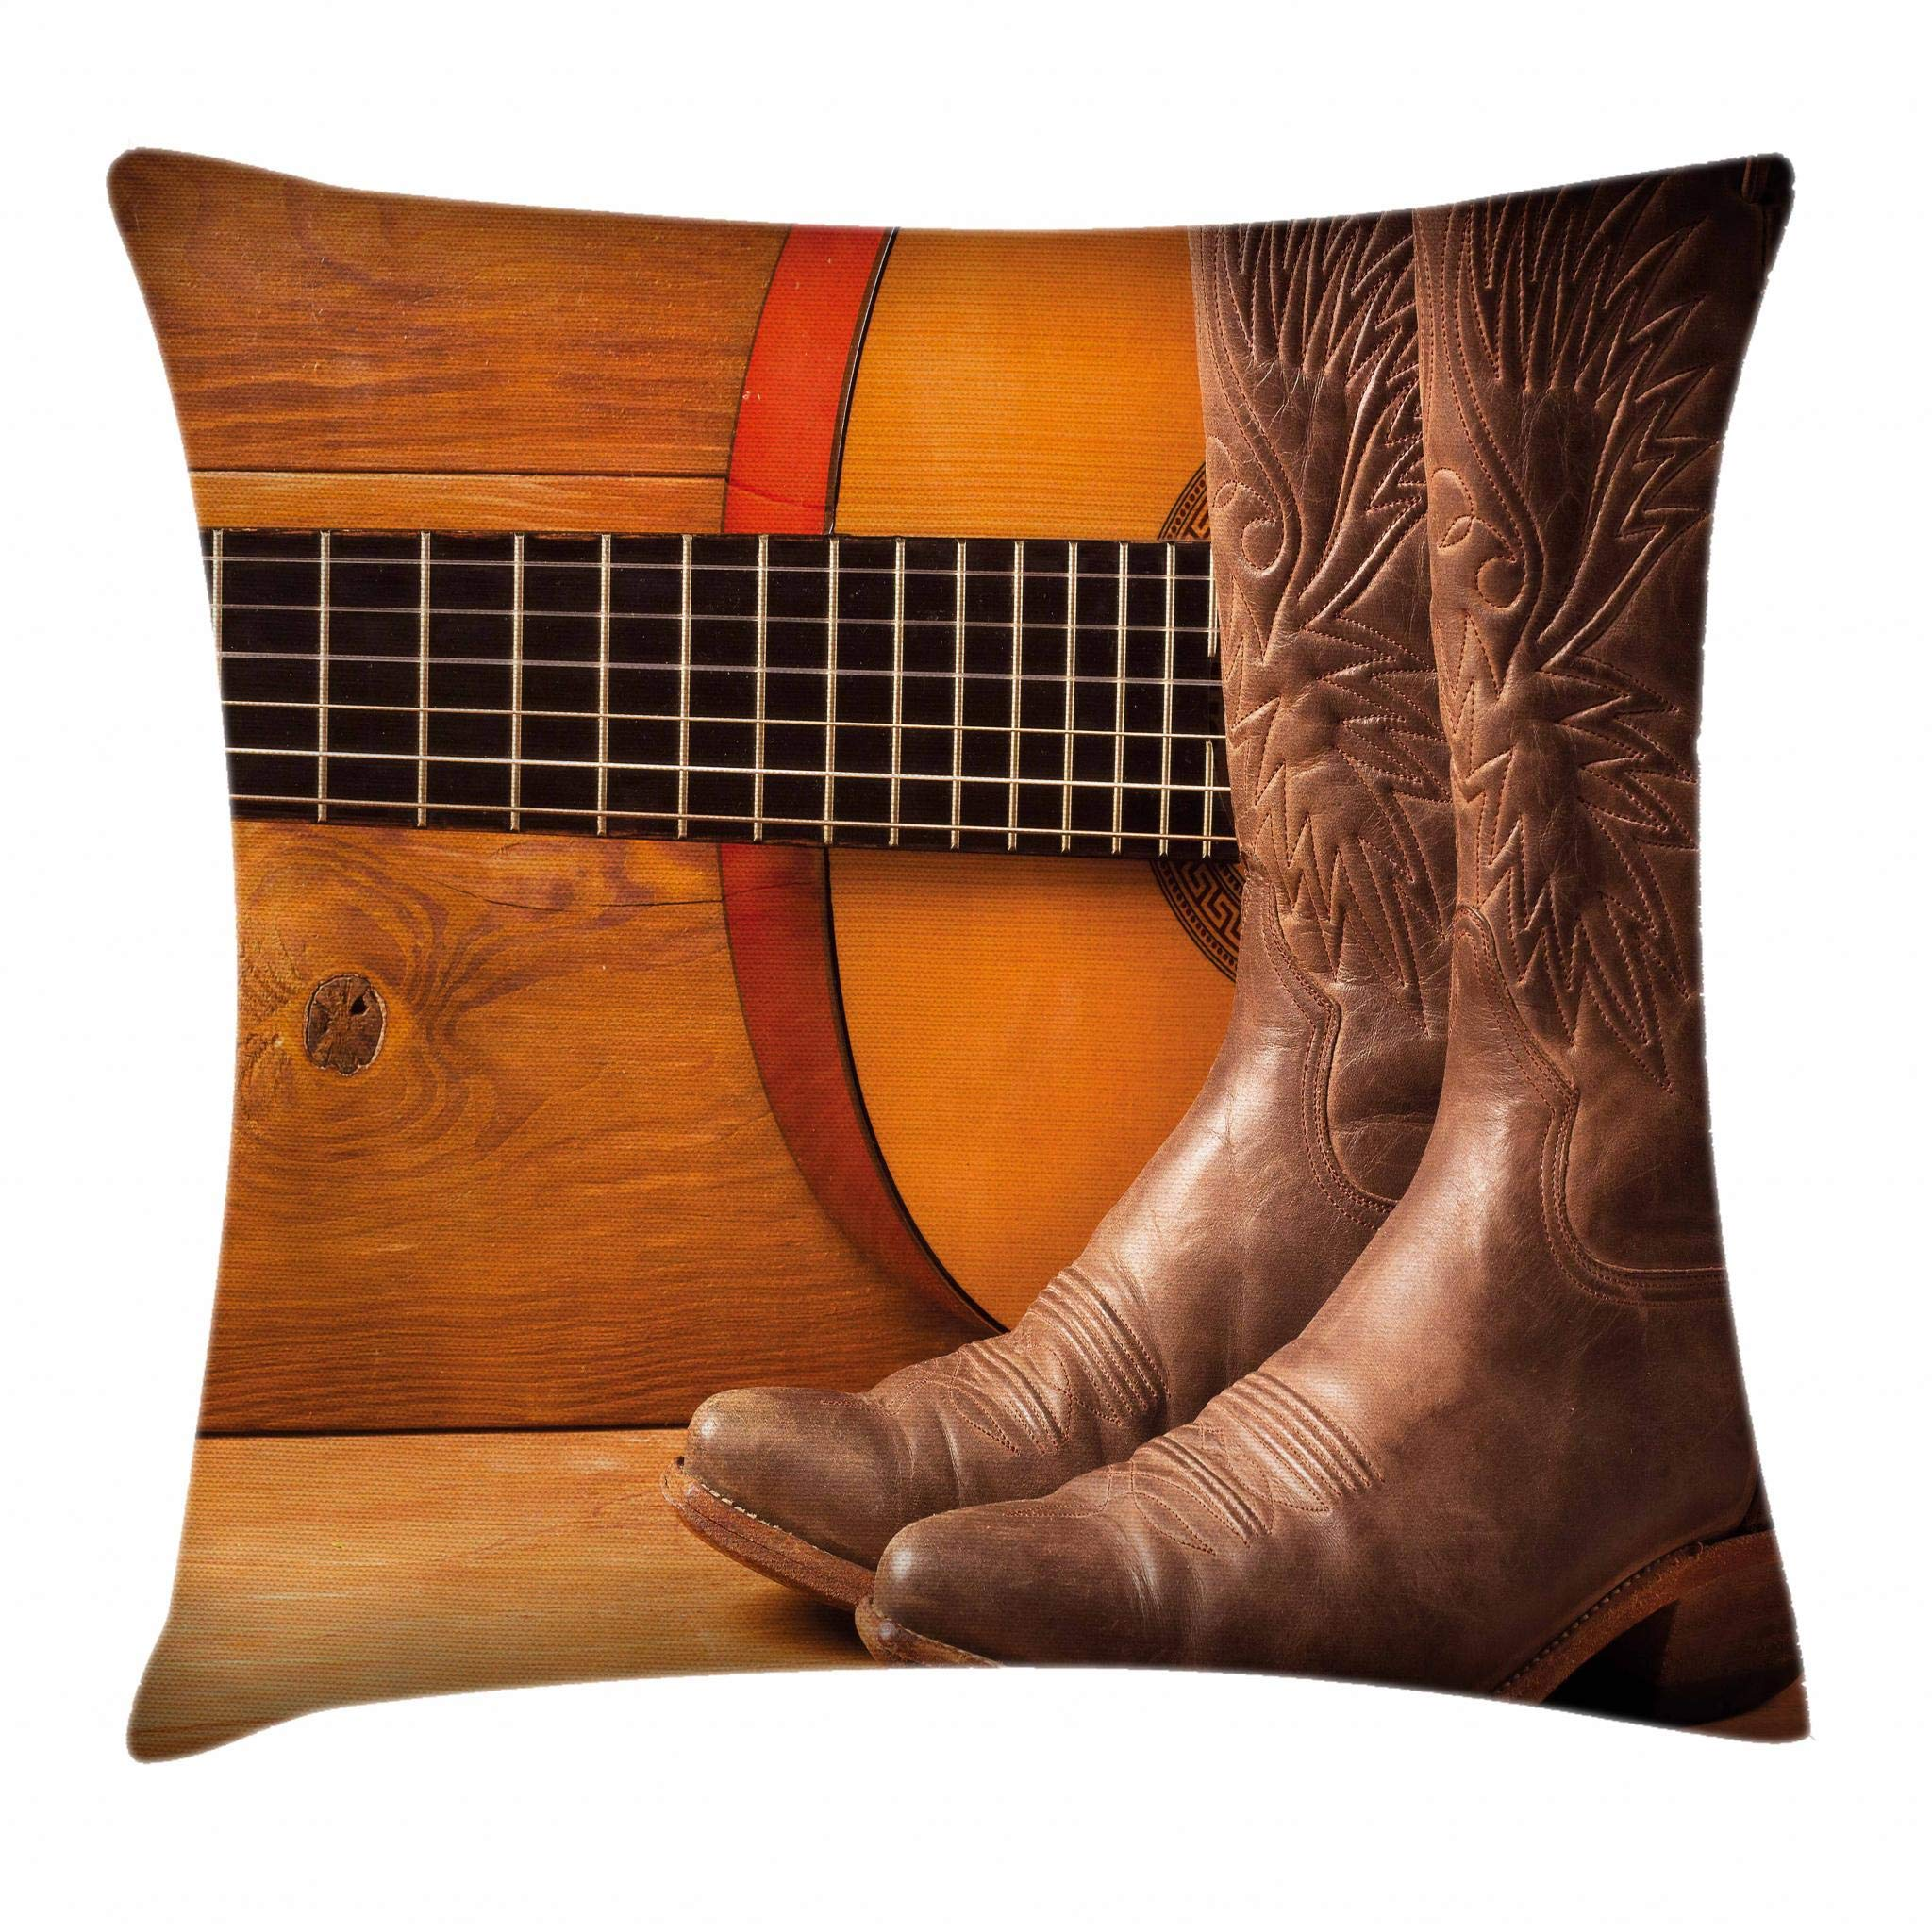 Lunarable Western Throw Pillow Cushion Cover, American Country Music Theme Guitar Instrument and Cowboy Shoes on Wood Image, Decorative Square Accent Pillow Case, 36 X 36 Inches, Brown Orange